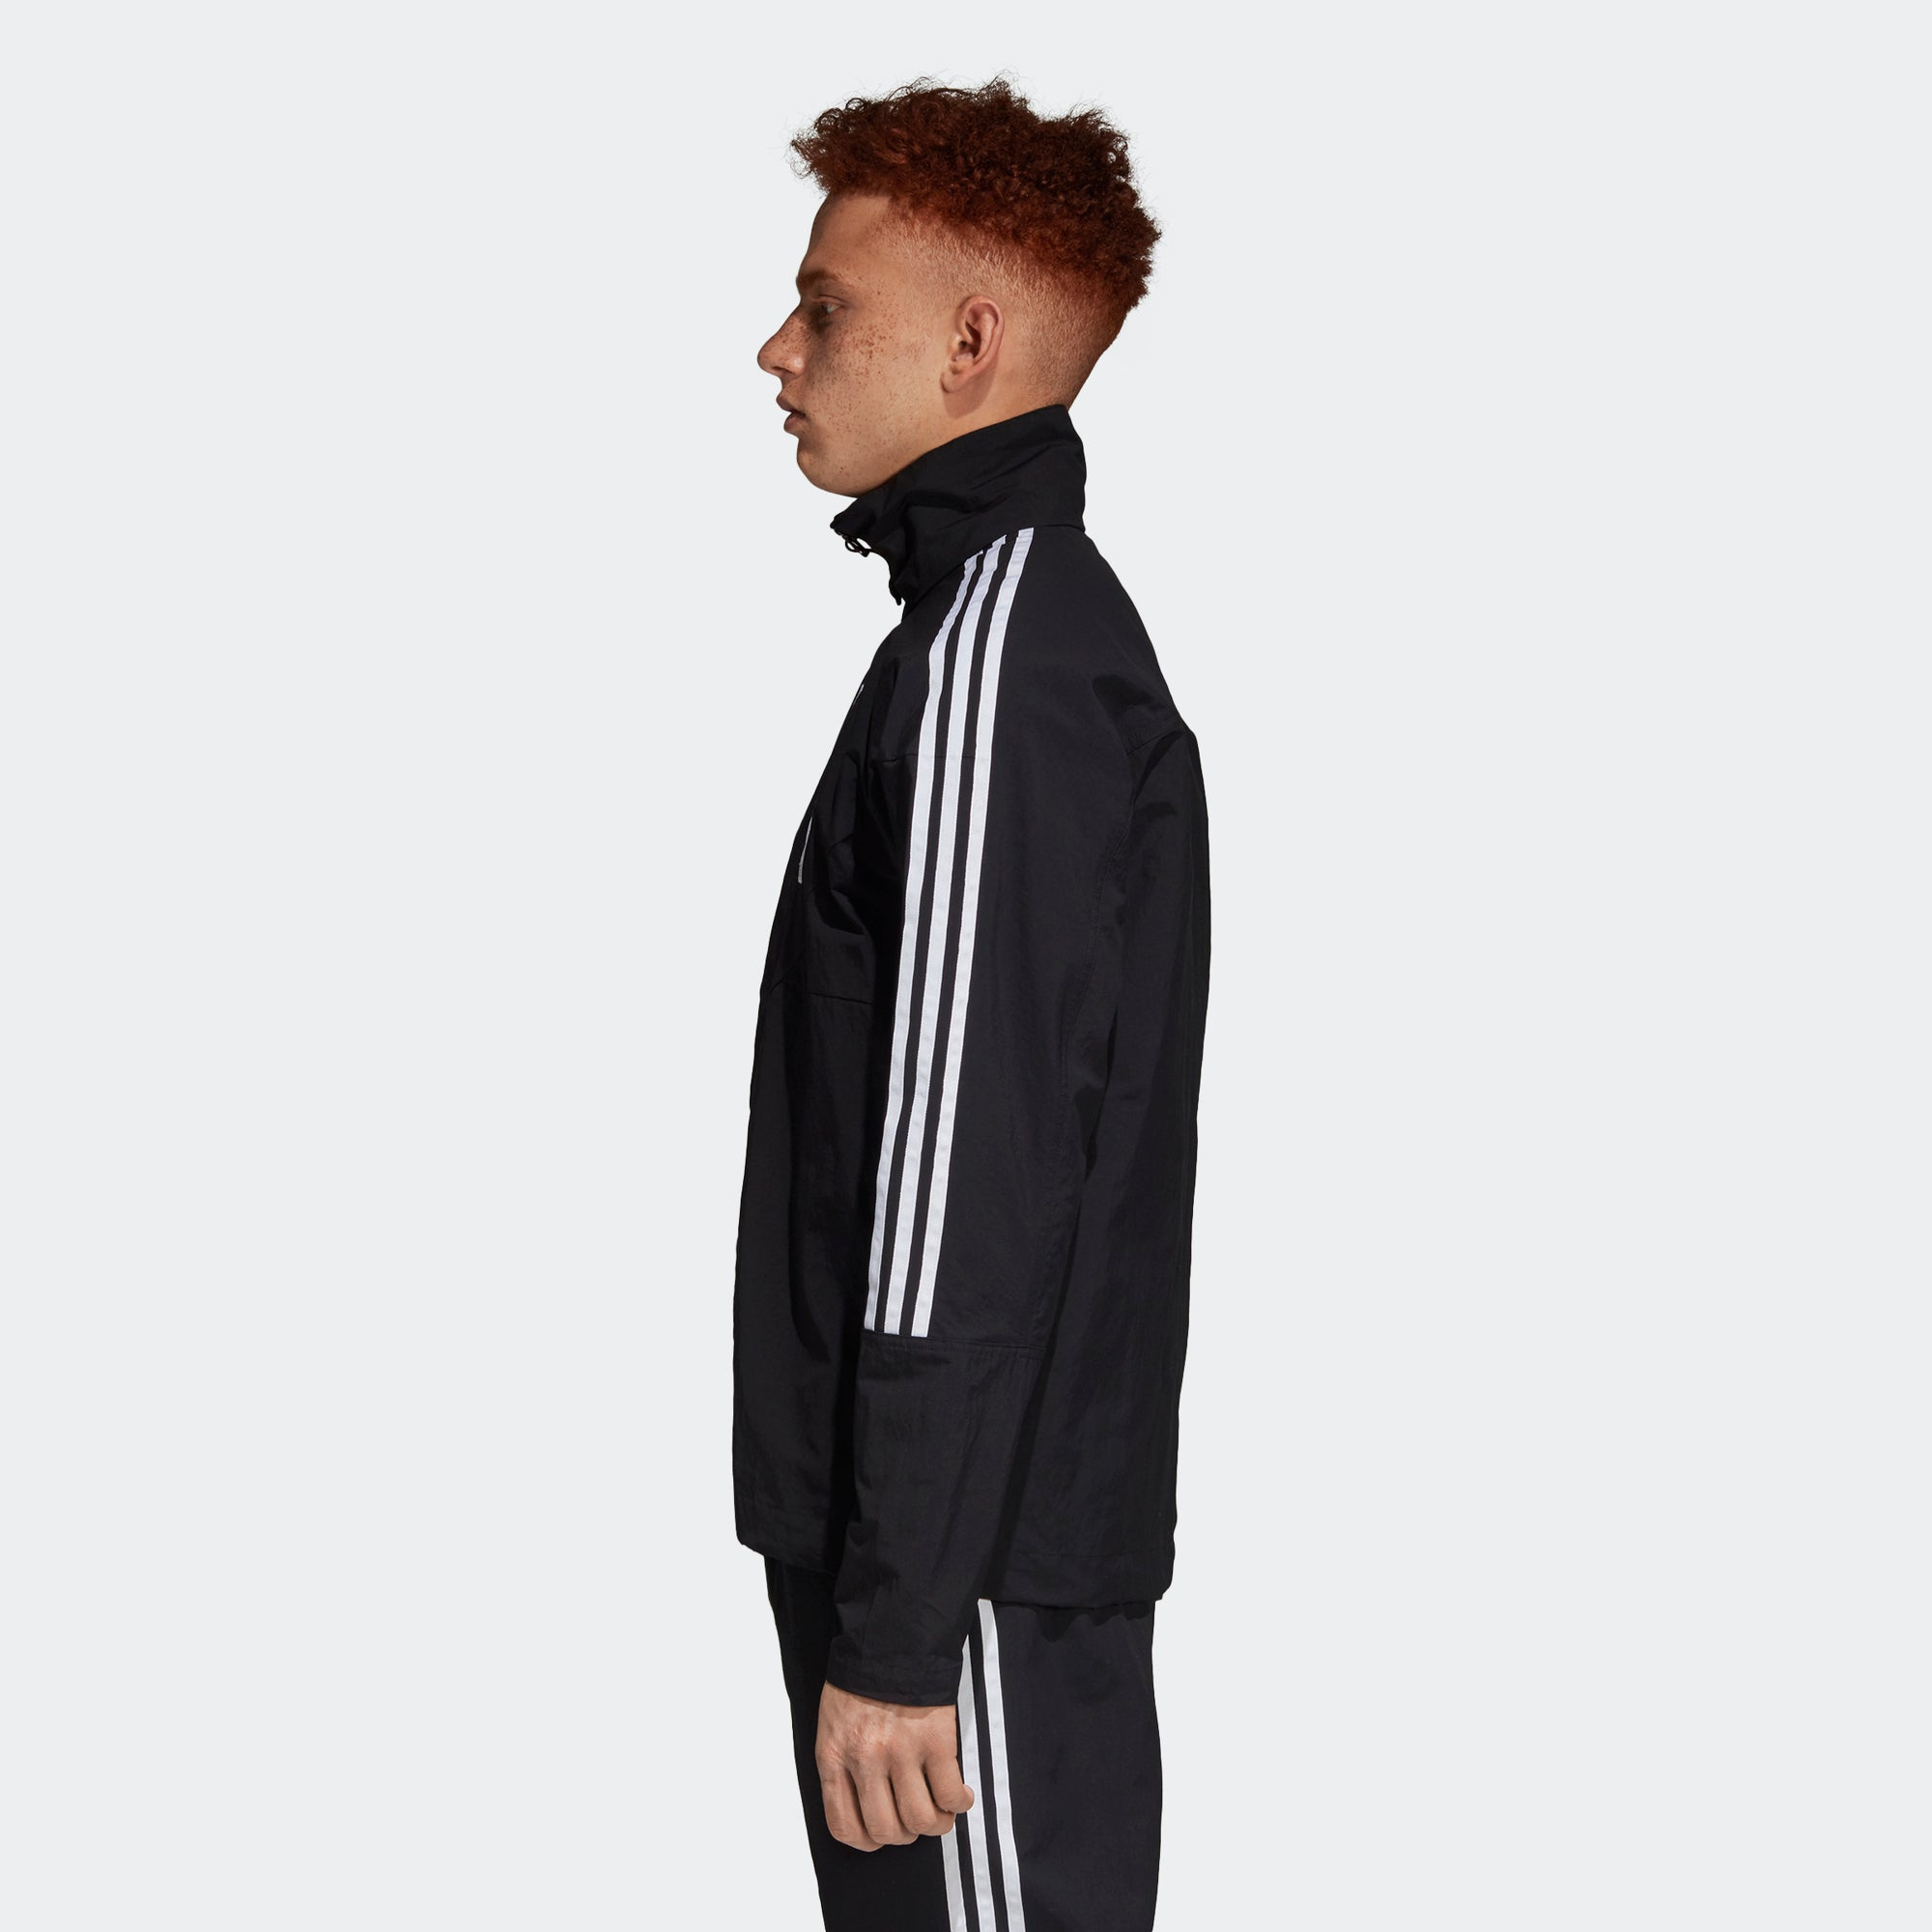 adidas NMD Track Jacket Black DH2276 | Chicago City Sports